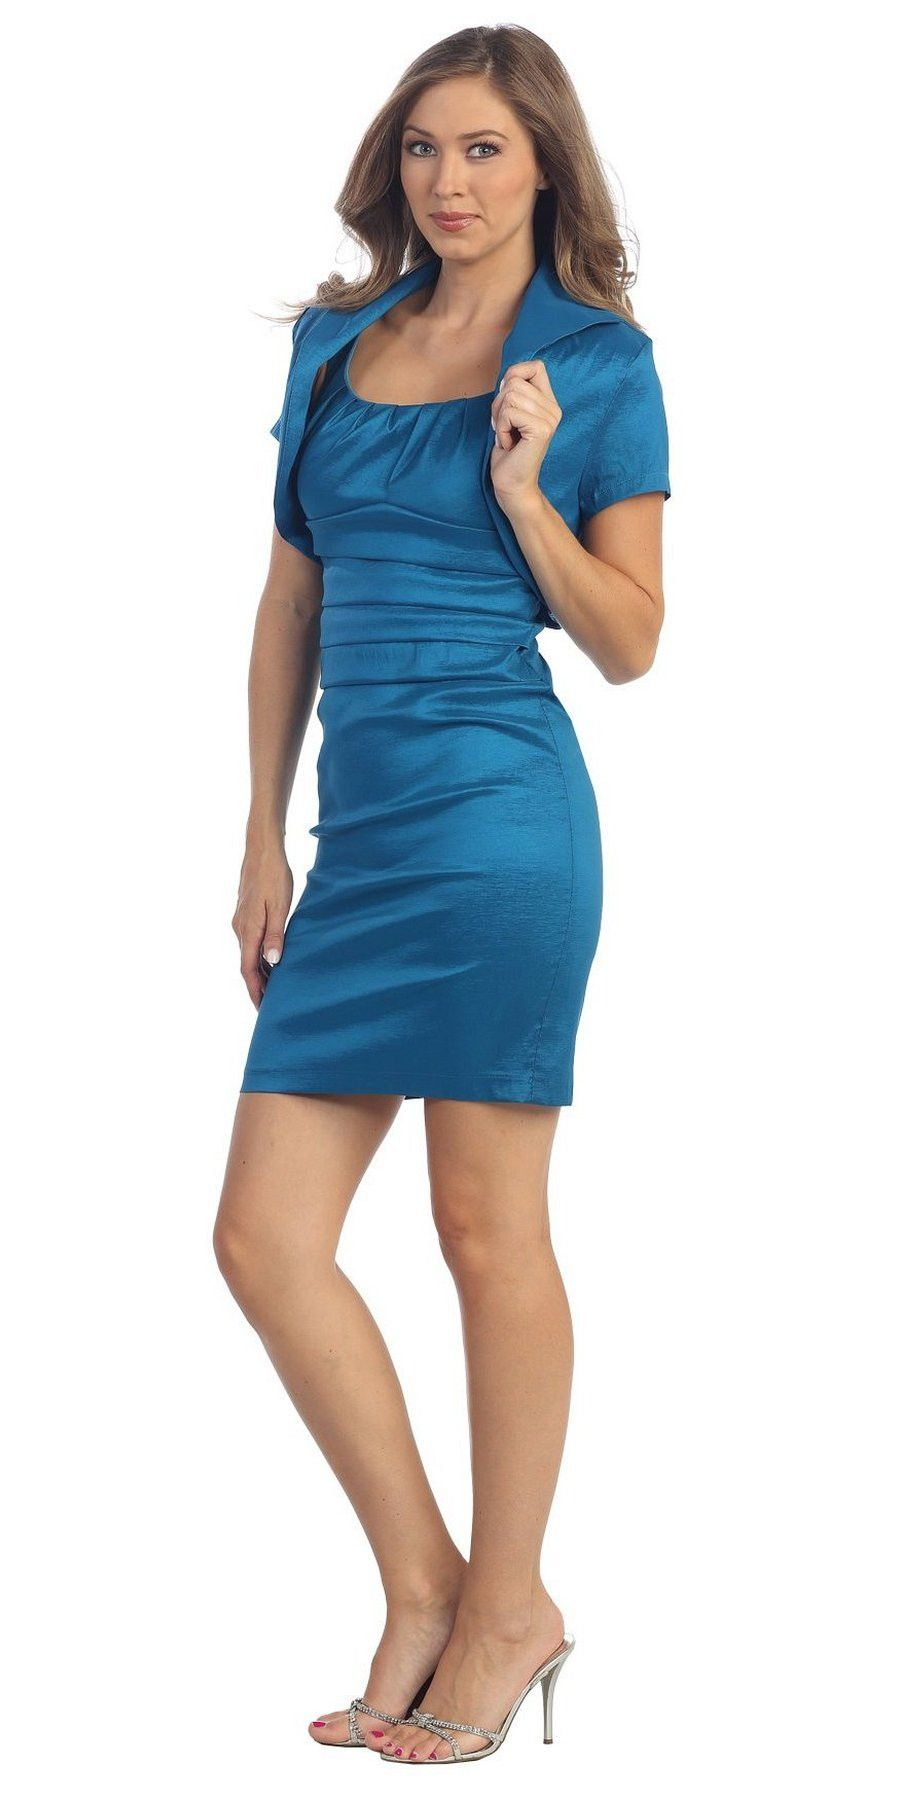 CLEARANCE - Simple Short Teal Blue Dress Fitted Tight Includes ...